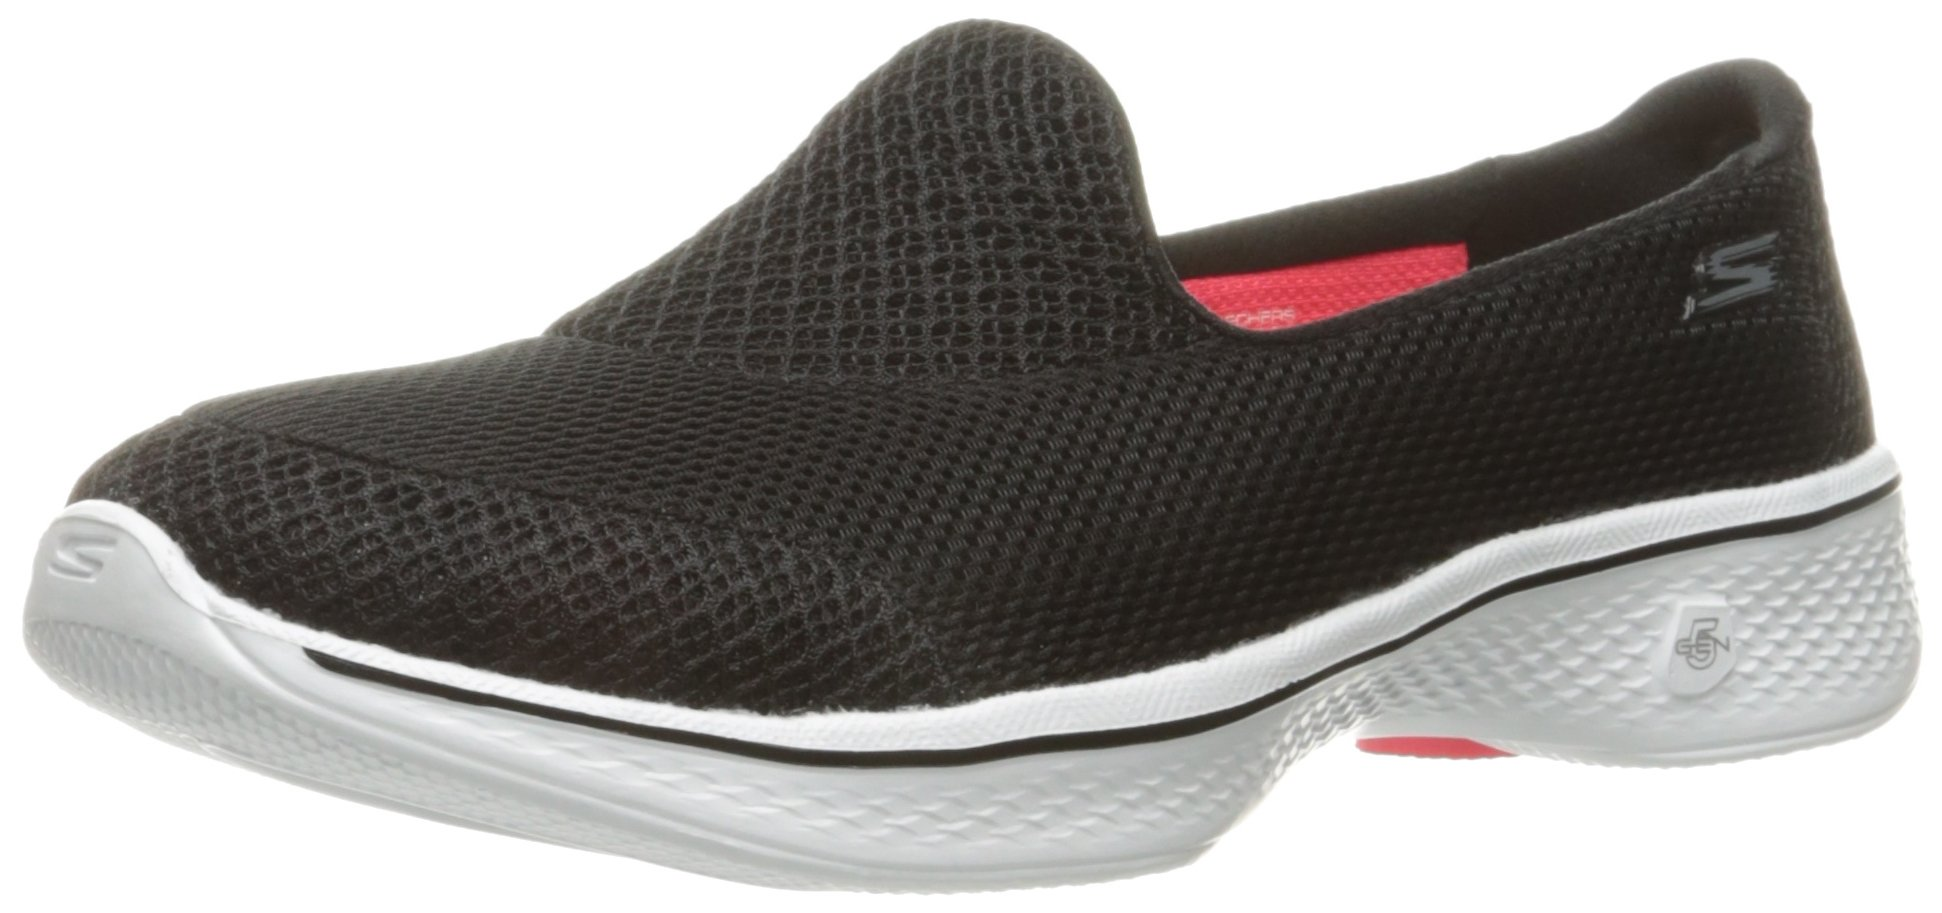 Skechers Performance Women's Go Walk 4 Propel Walking Shoe,Black/White,7.5 M US